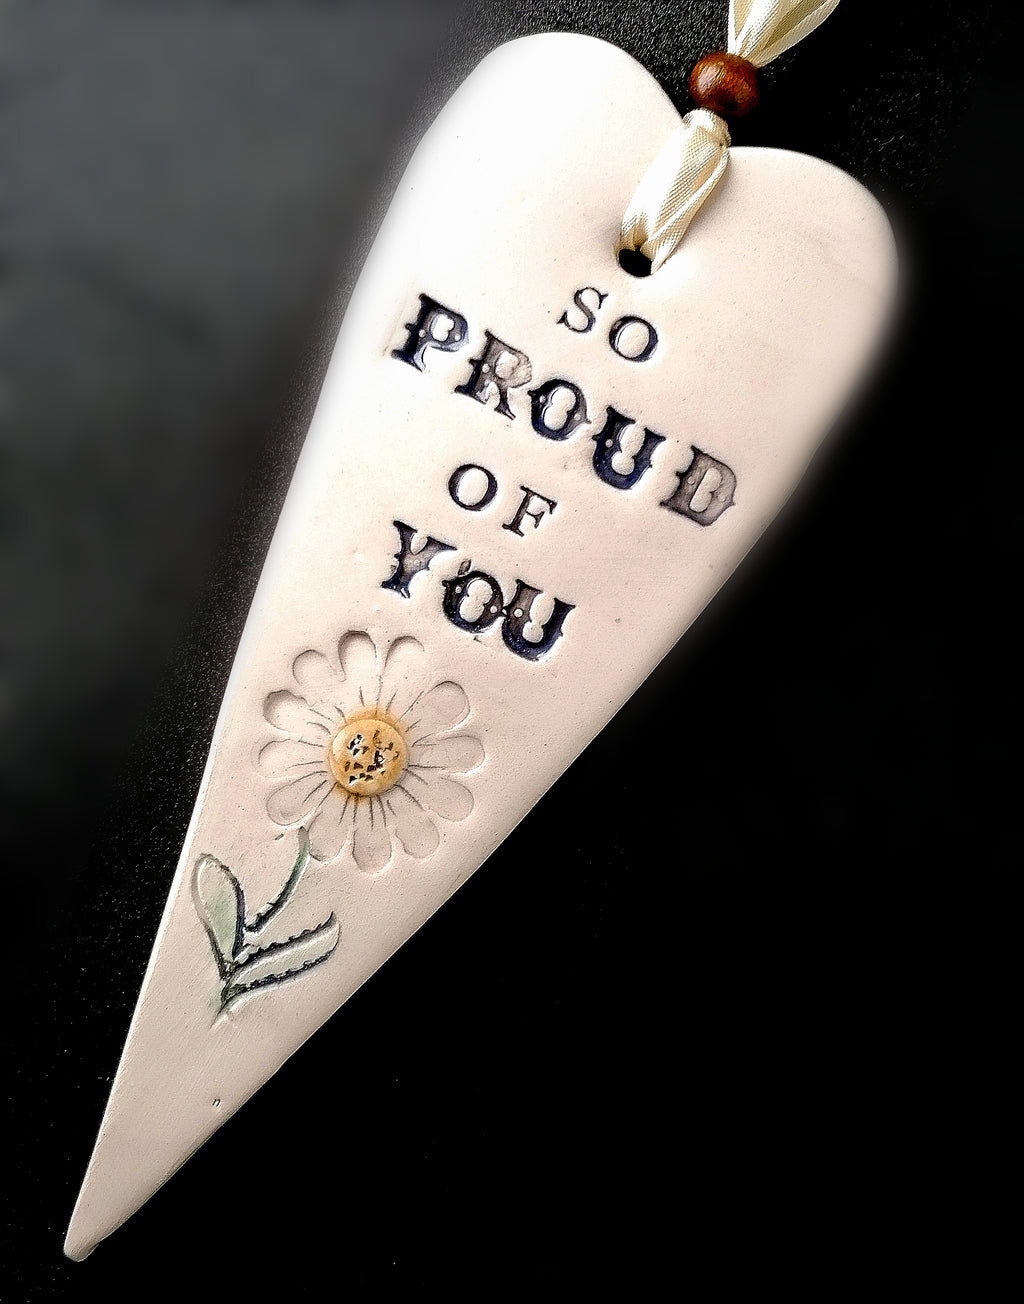 'Proud of You' Small Heart